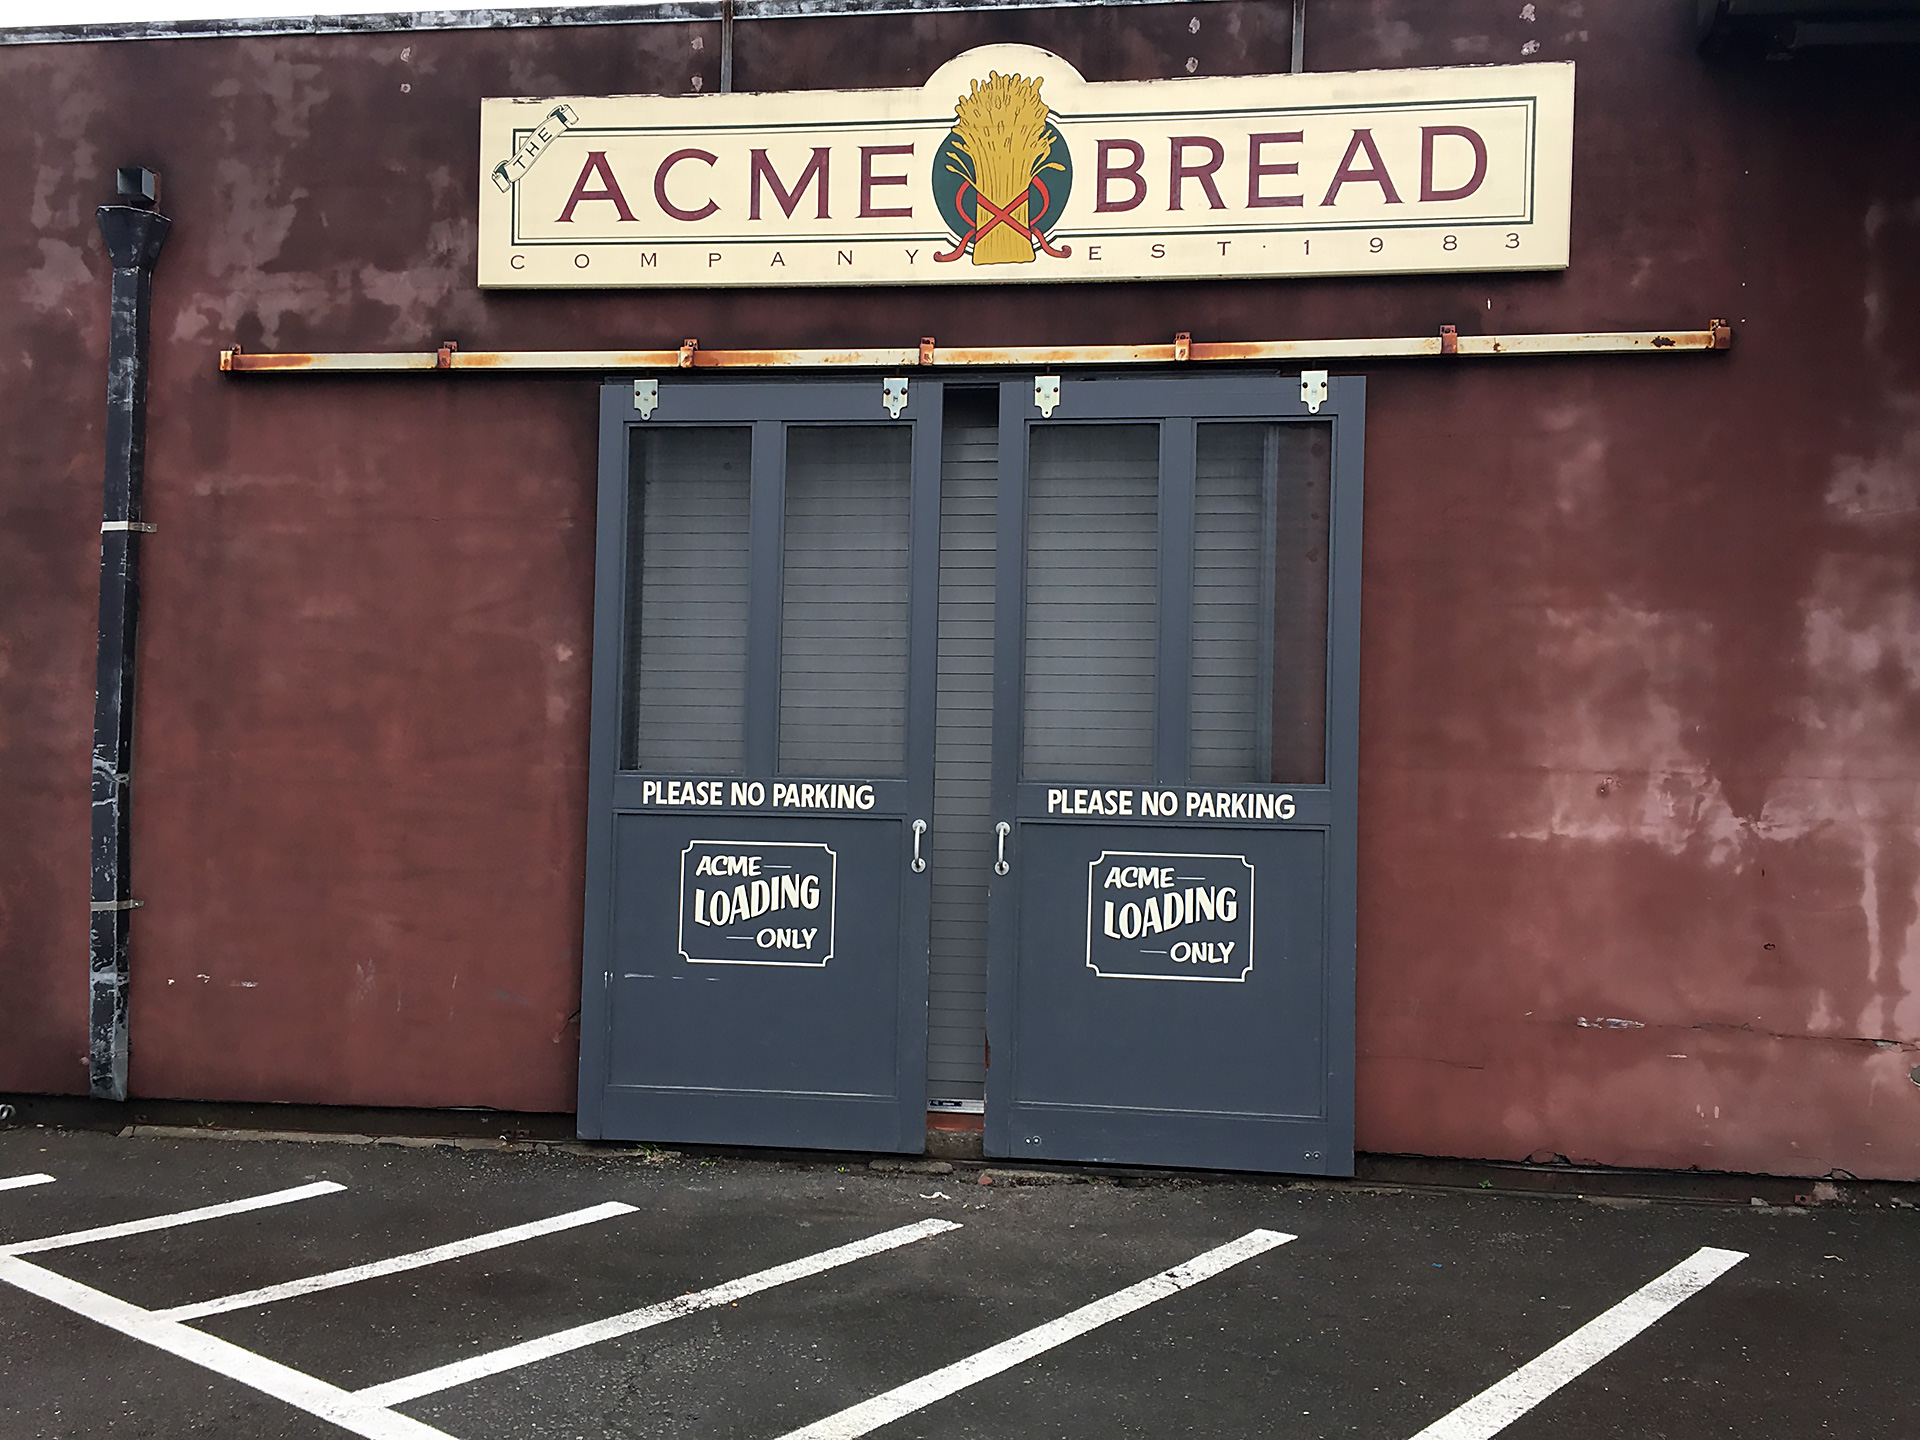 Outside Acme Bread in Berkeley